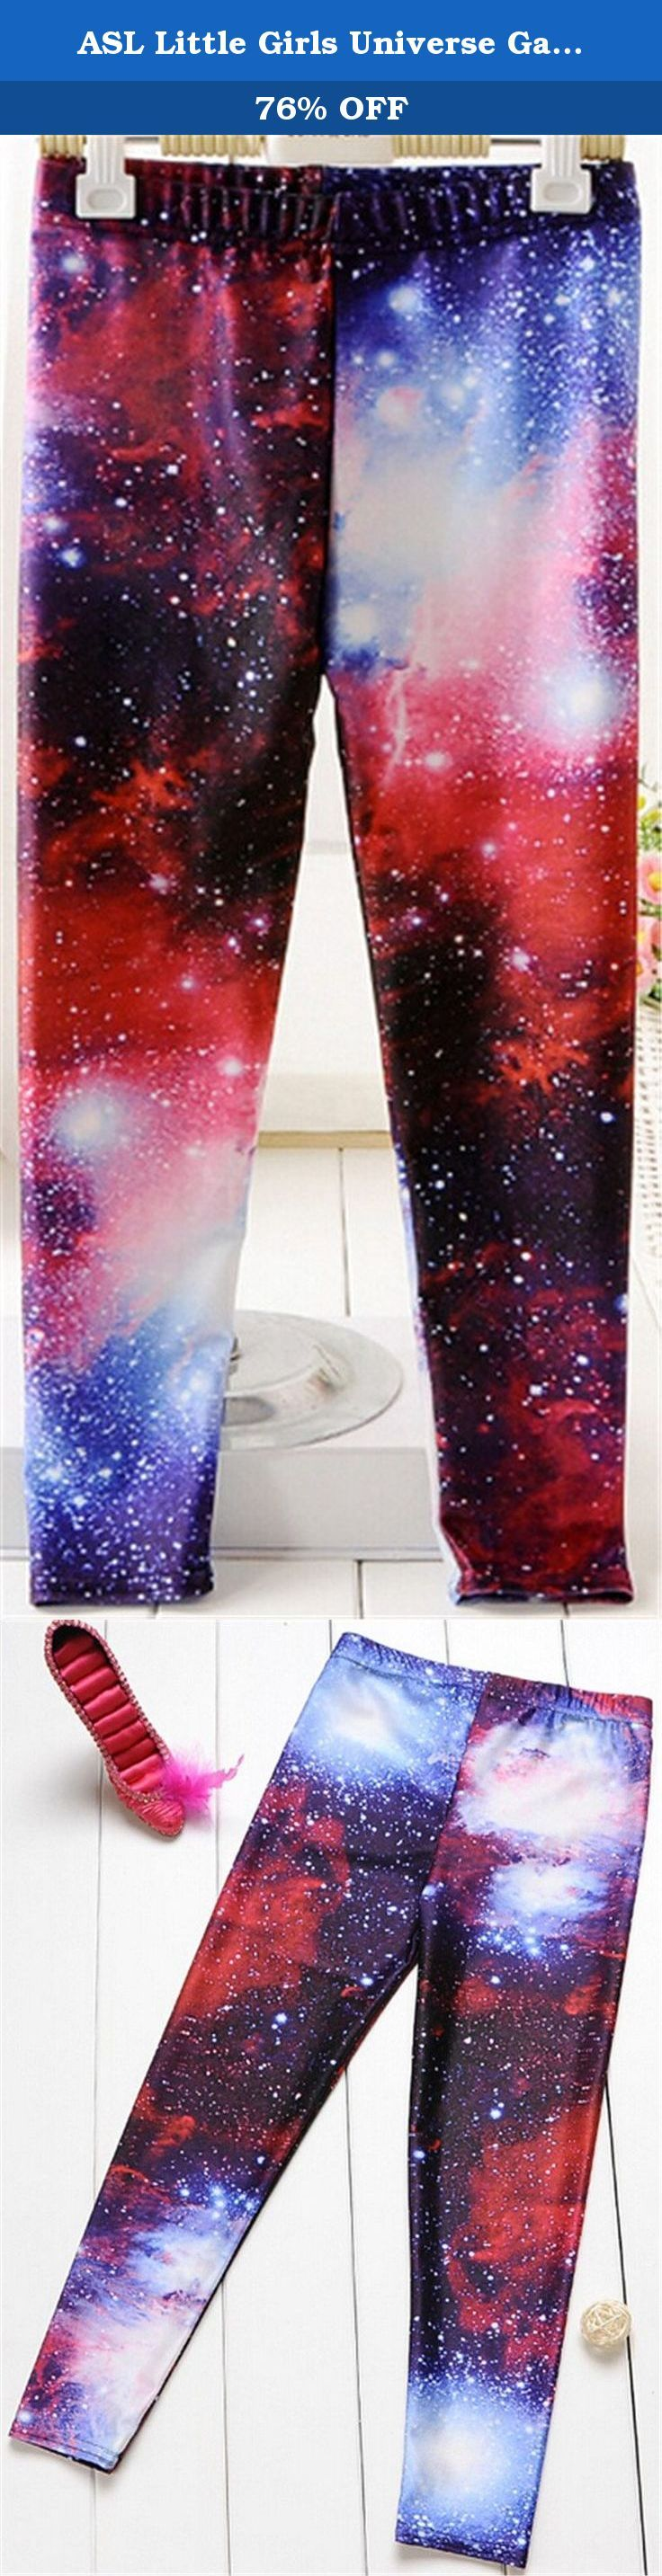 """ASL Little Girls Universe Galaxy Printed Skinny Leggings Pants 04 red. Any problem can contact our customer service, promise to give you satisfied solution. The products from China which is good quality and good price. Pay attention to our Asian size which is much smaller than US size, you can contact us to get help for your right size. Material: The detail measurement is as follow: Spandex and Lycra Size details: 2-3y:Pant Length:23.62""""(60cm) waist:9.06""""(23cm); 3-4y:Pant…"""